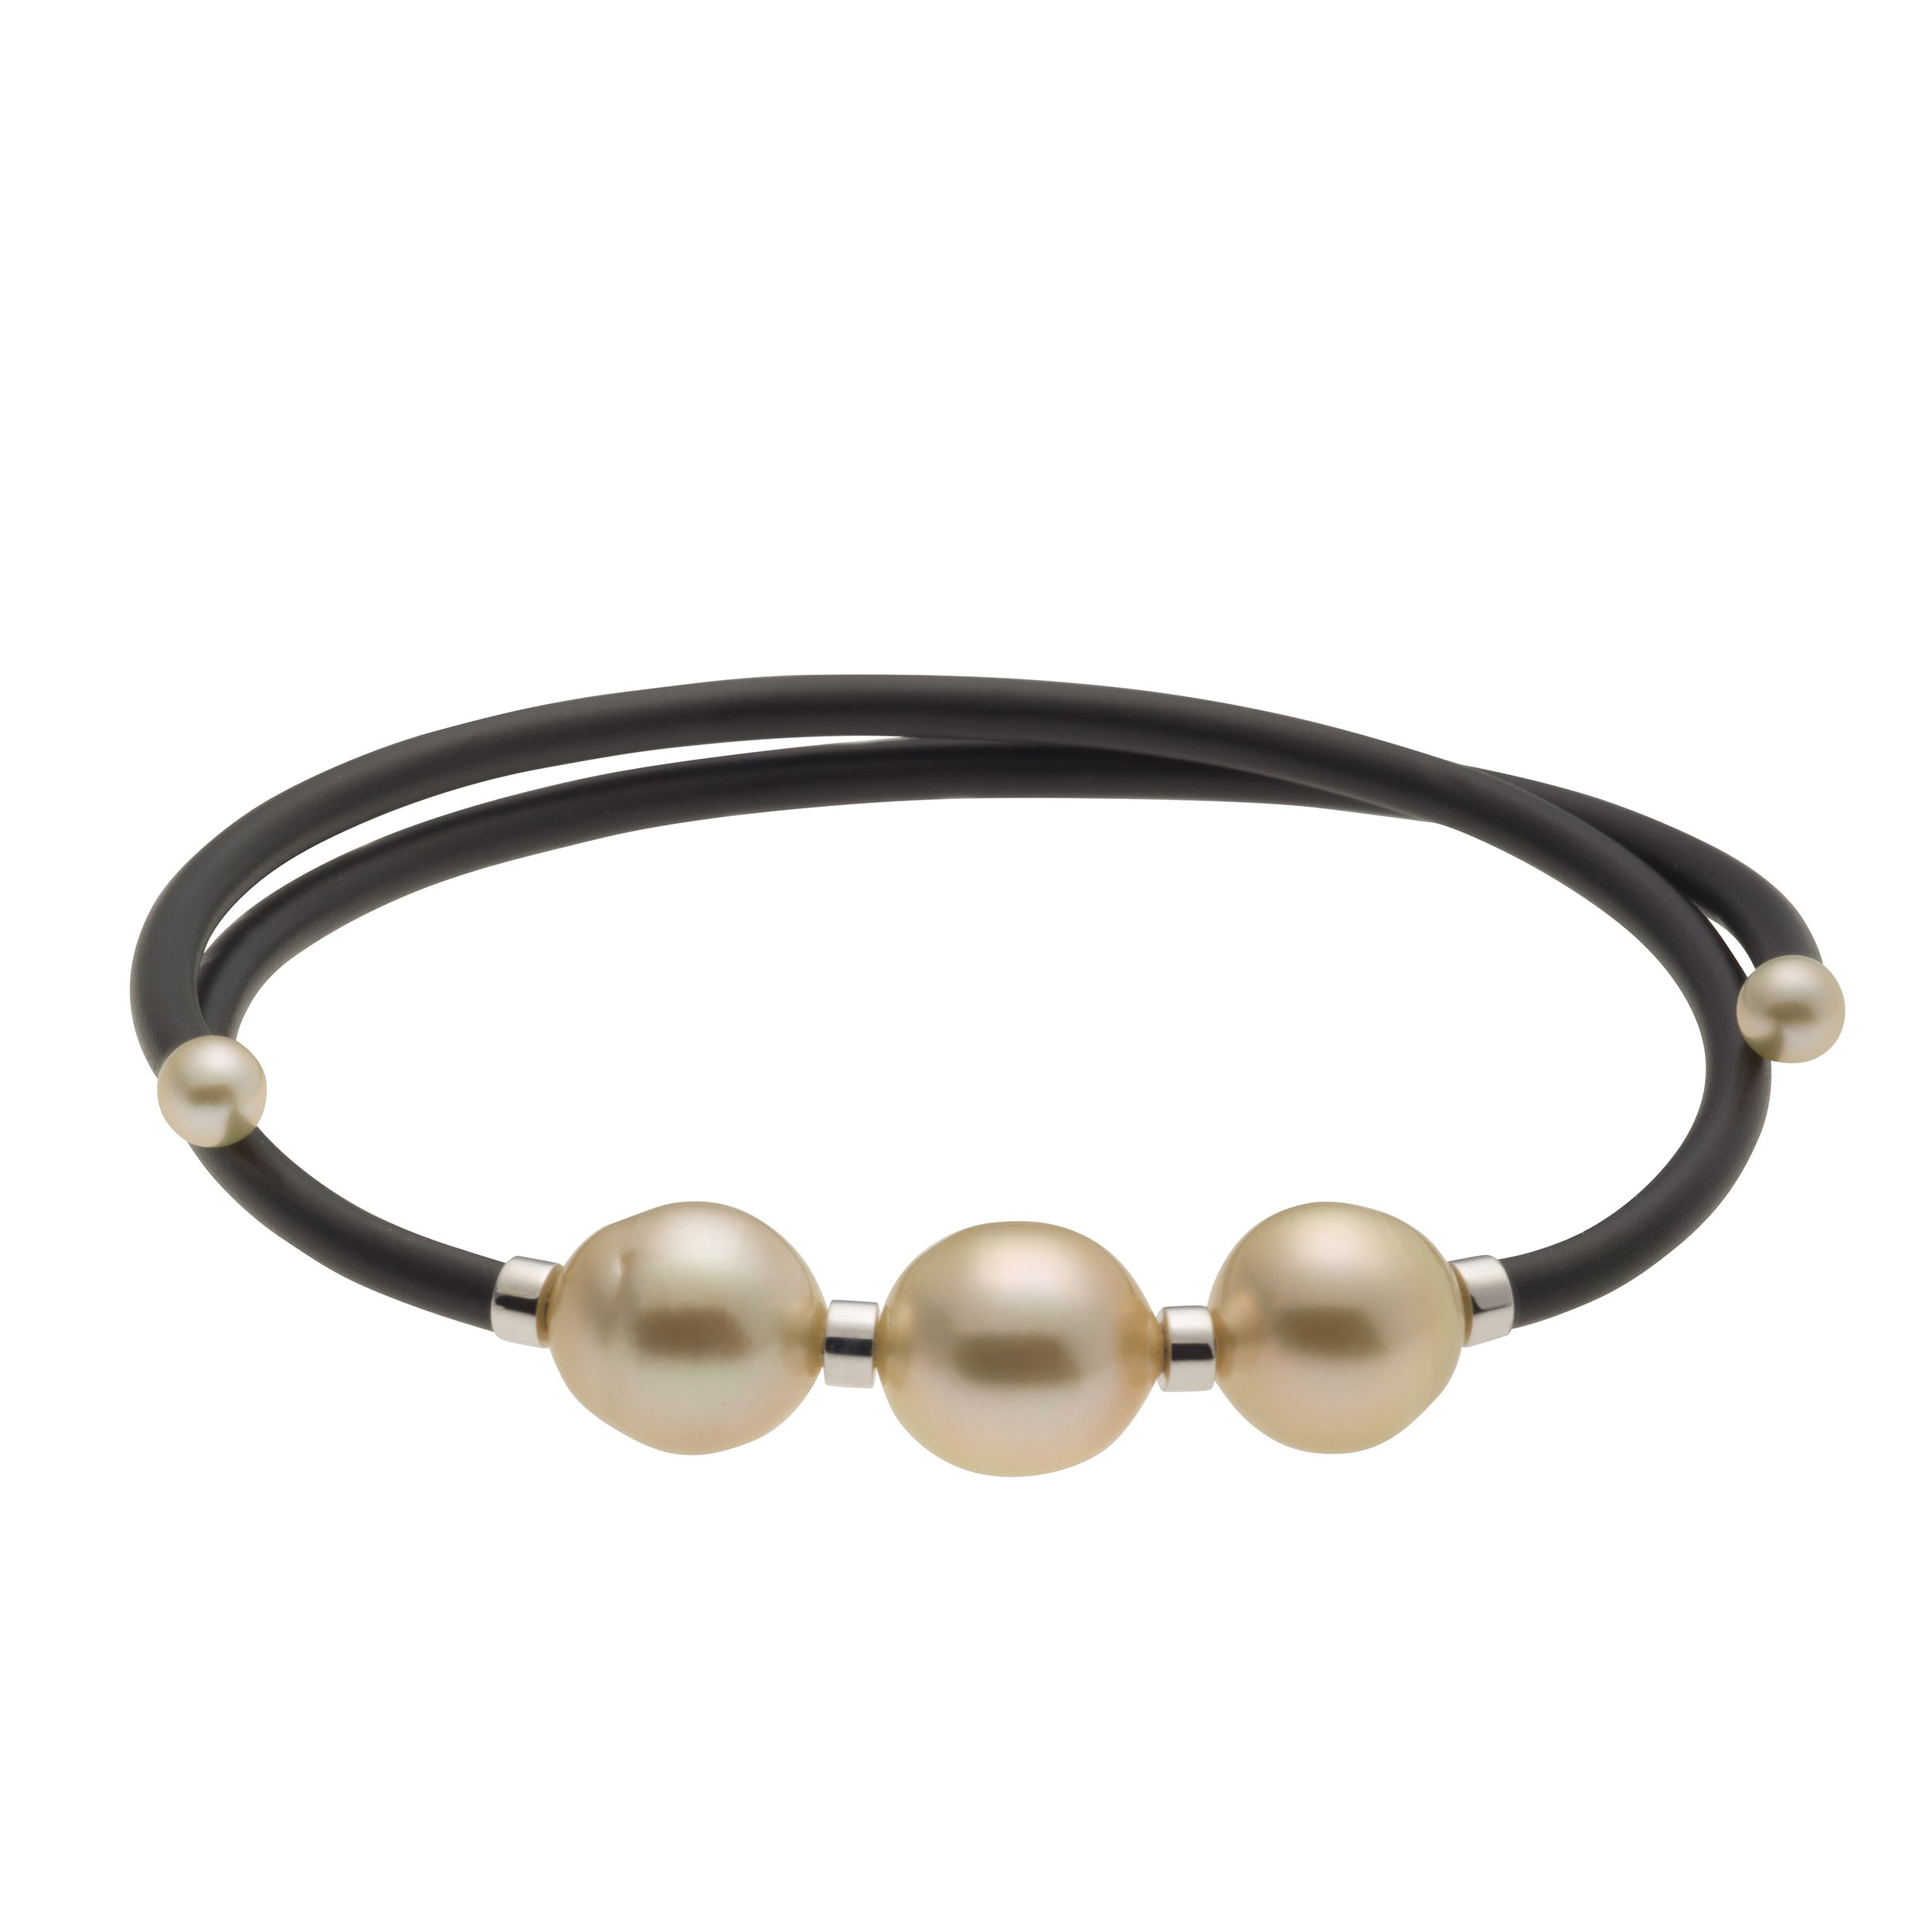 UNIQUE UNISEX GOLDEN SOUTH SEA AND AKOYA CULTURED PEARL BANGLE BRACELET